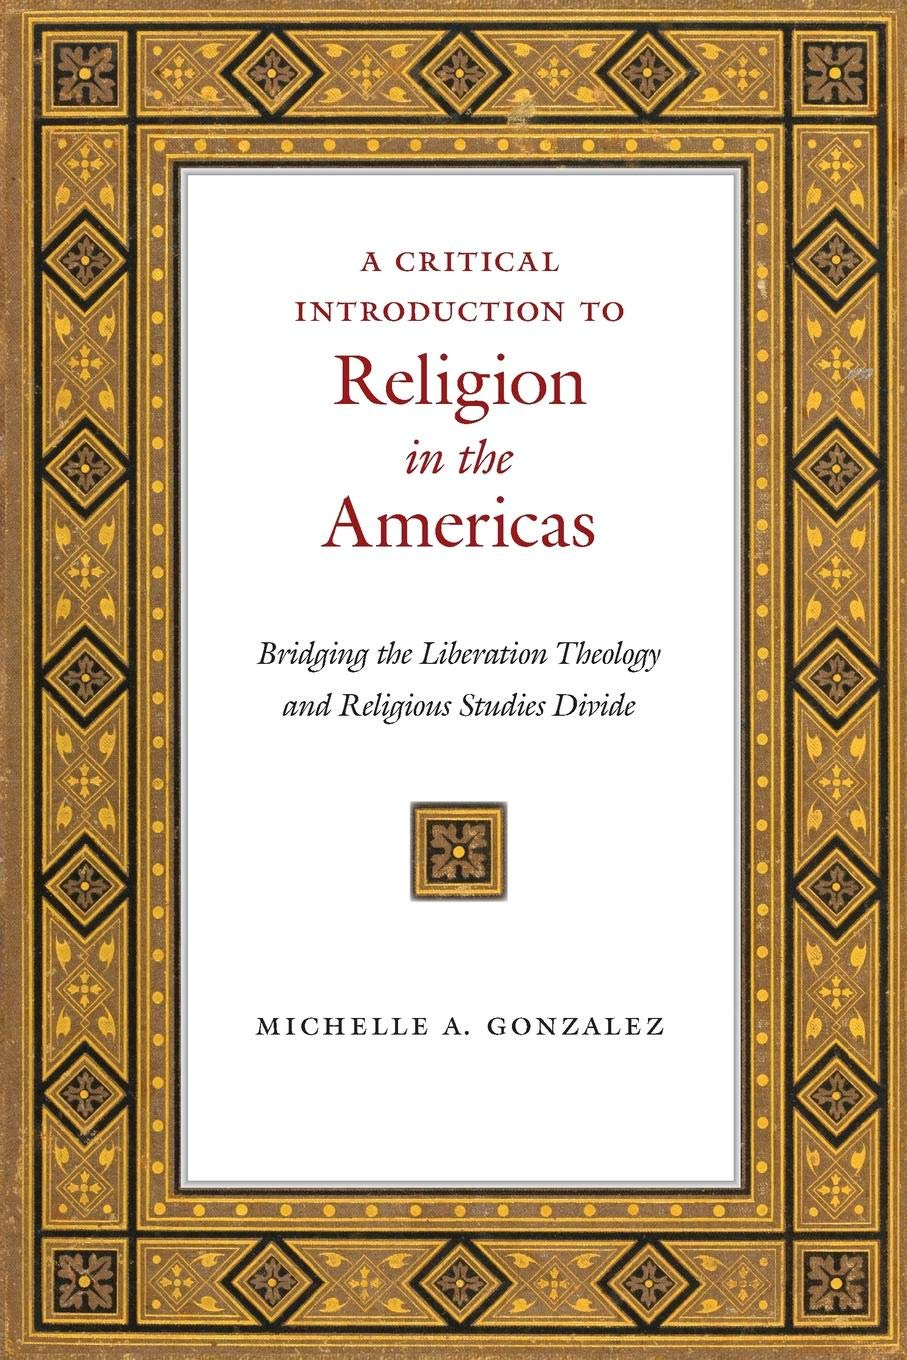 A Critical Introduction to Religion in the Americas: Bridging the Liberation Theology and Religious Studies Divide PDF